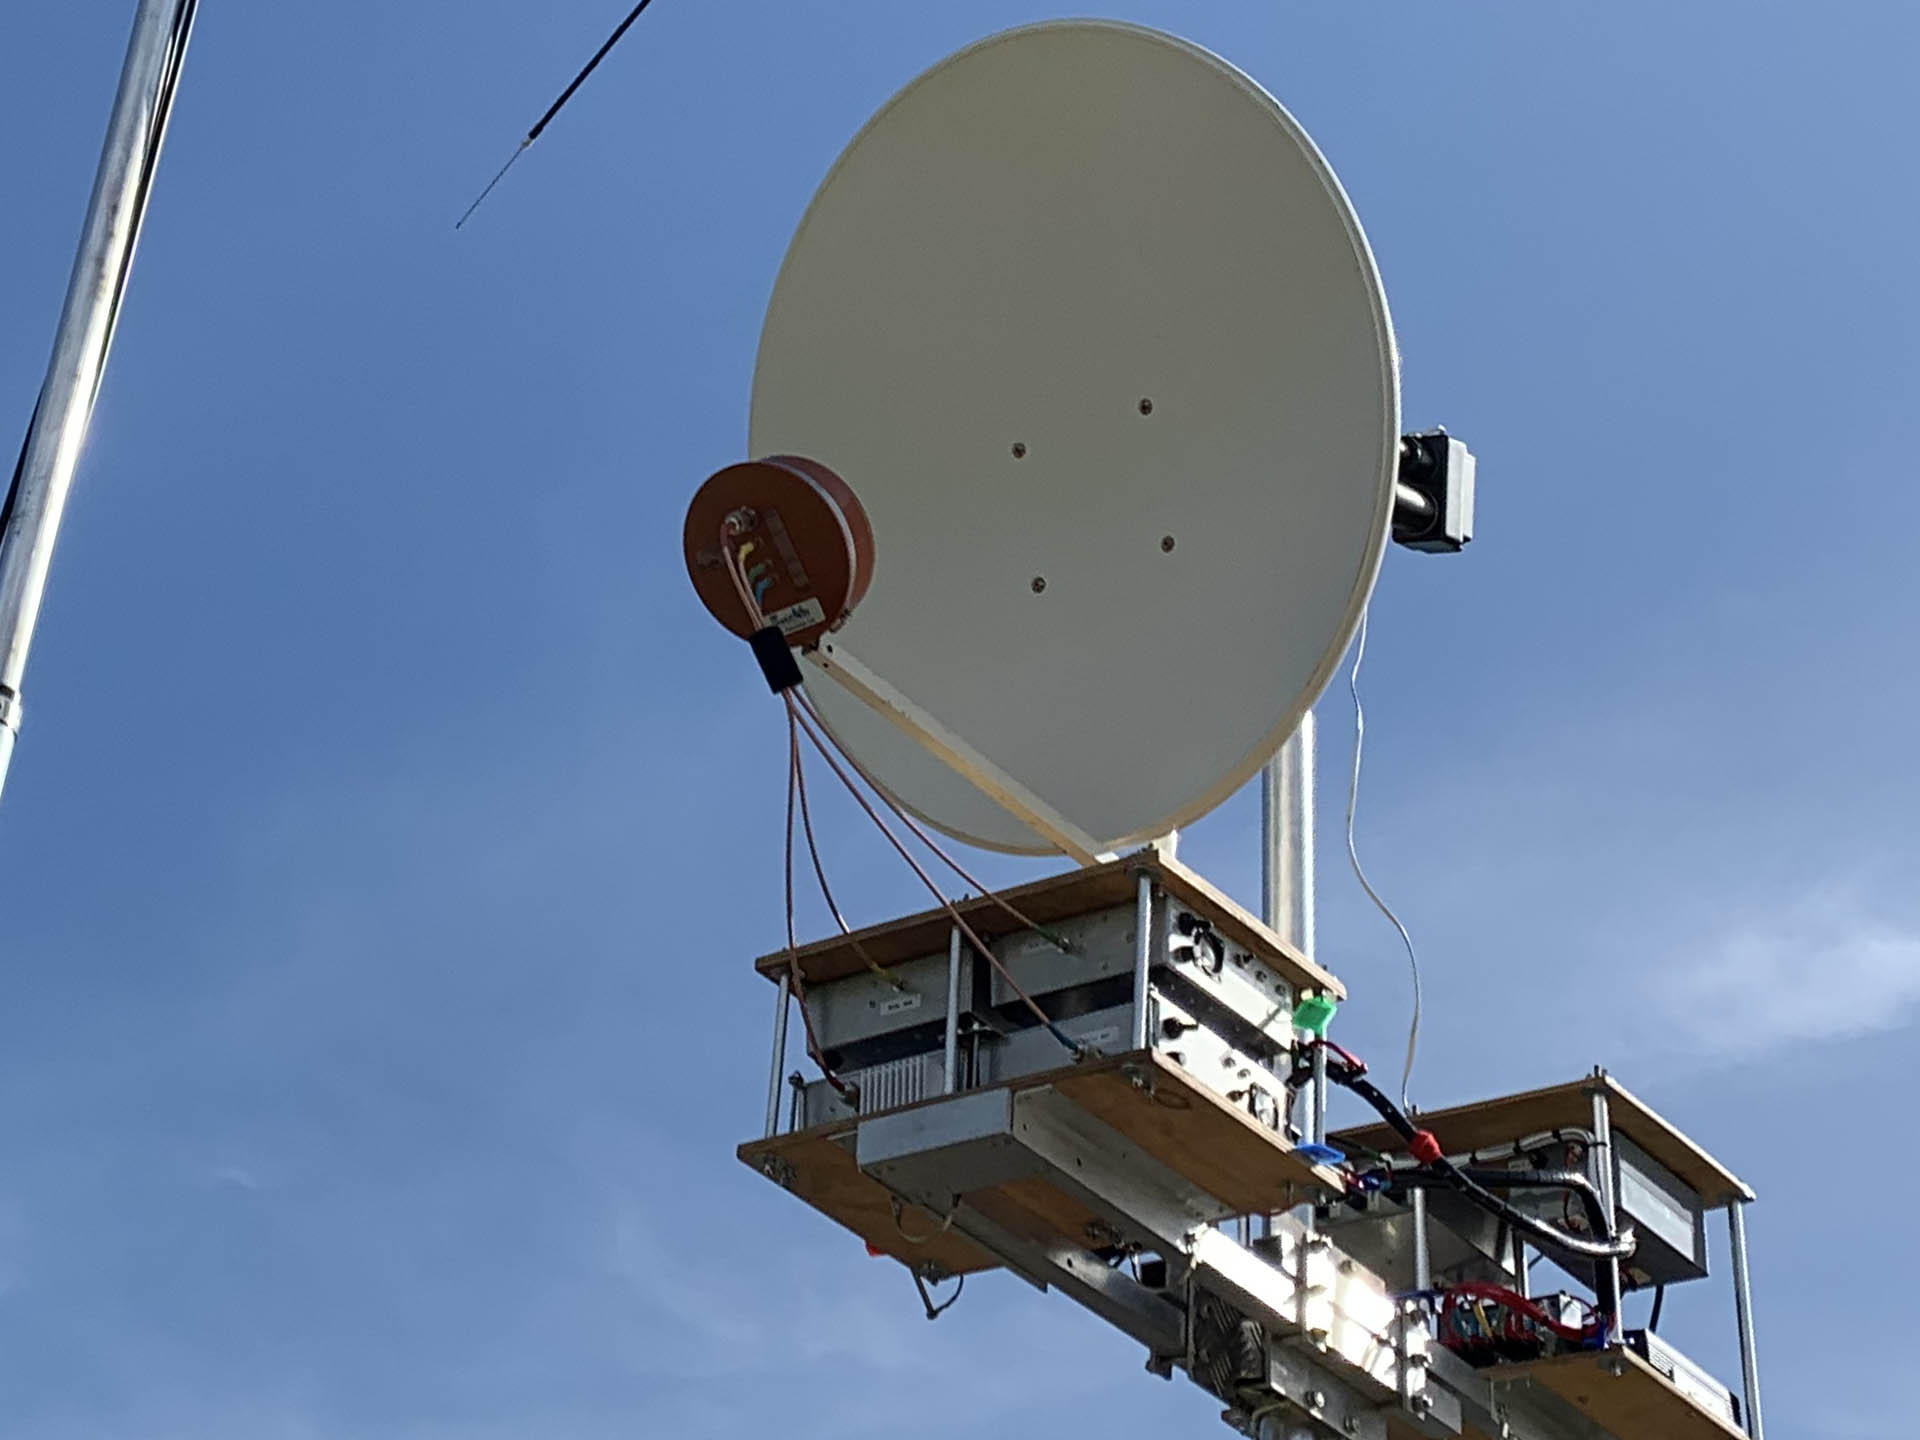 Picture of Peter VK3APW's RF Hamdesign feed in front of an offset dish. 10 GHz Amateur Radio